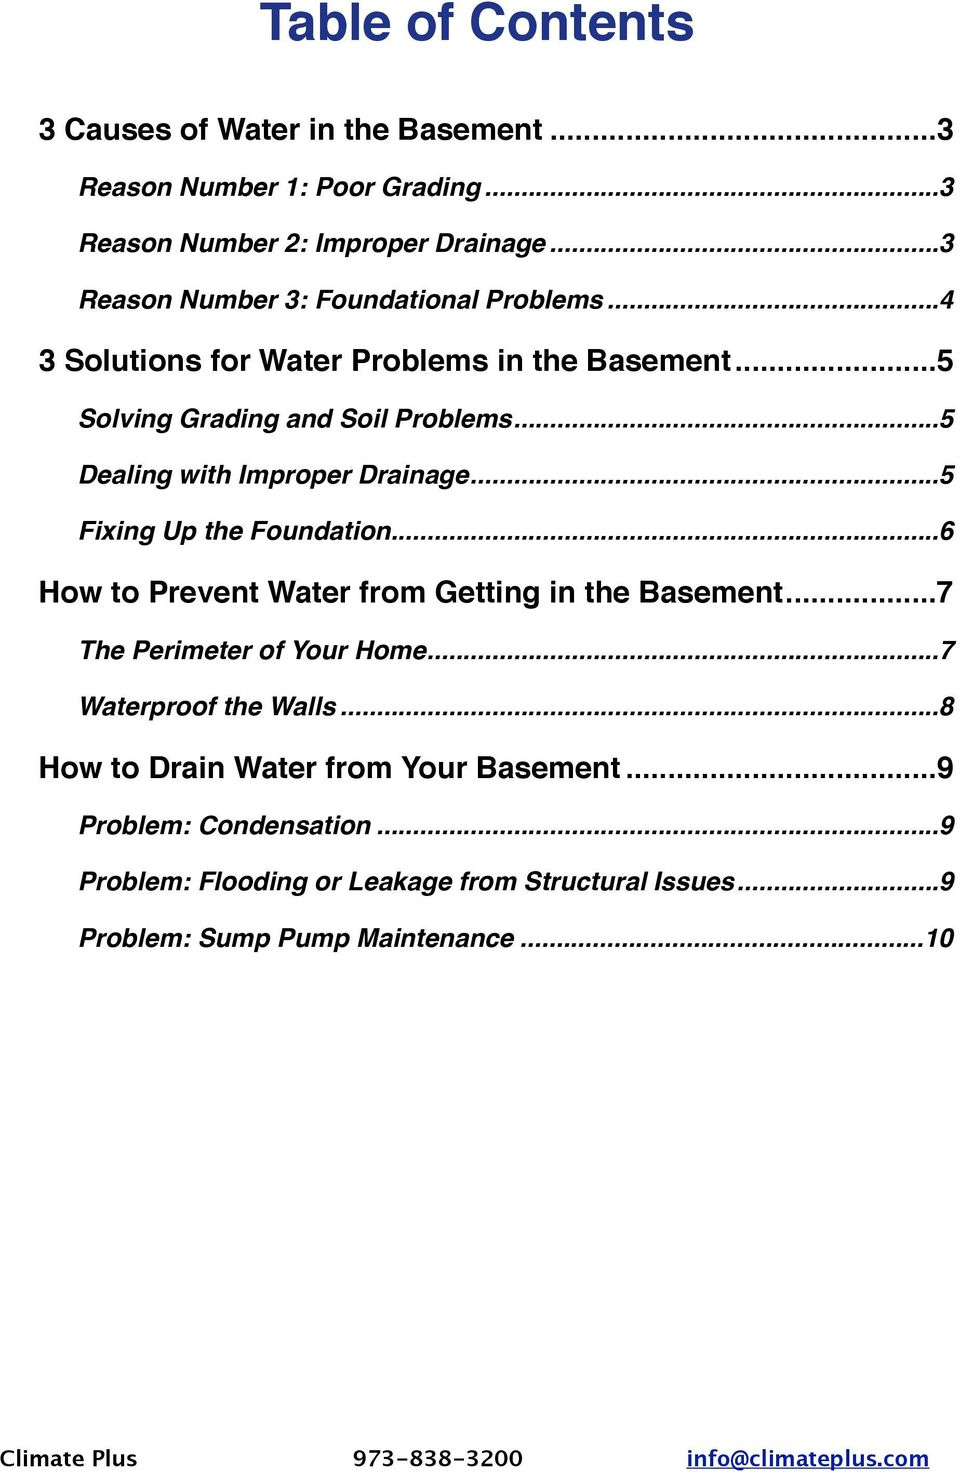 ... 5 Dealing with Improper Drainage!... 5 Fixing Up the Foundation!... 6 How to Prevent Water from Getting in the Basement!... 7 The Perimeter of Your Home!